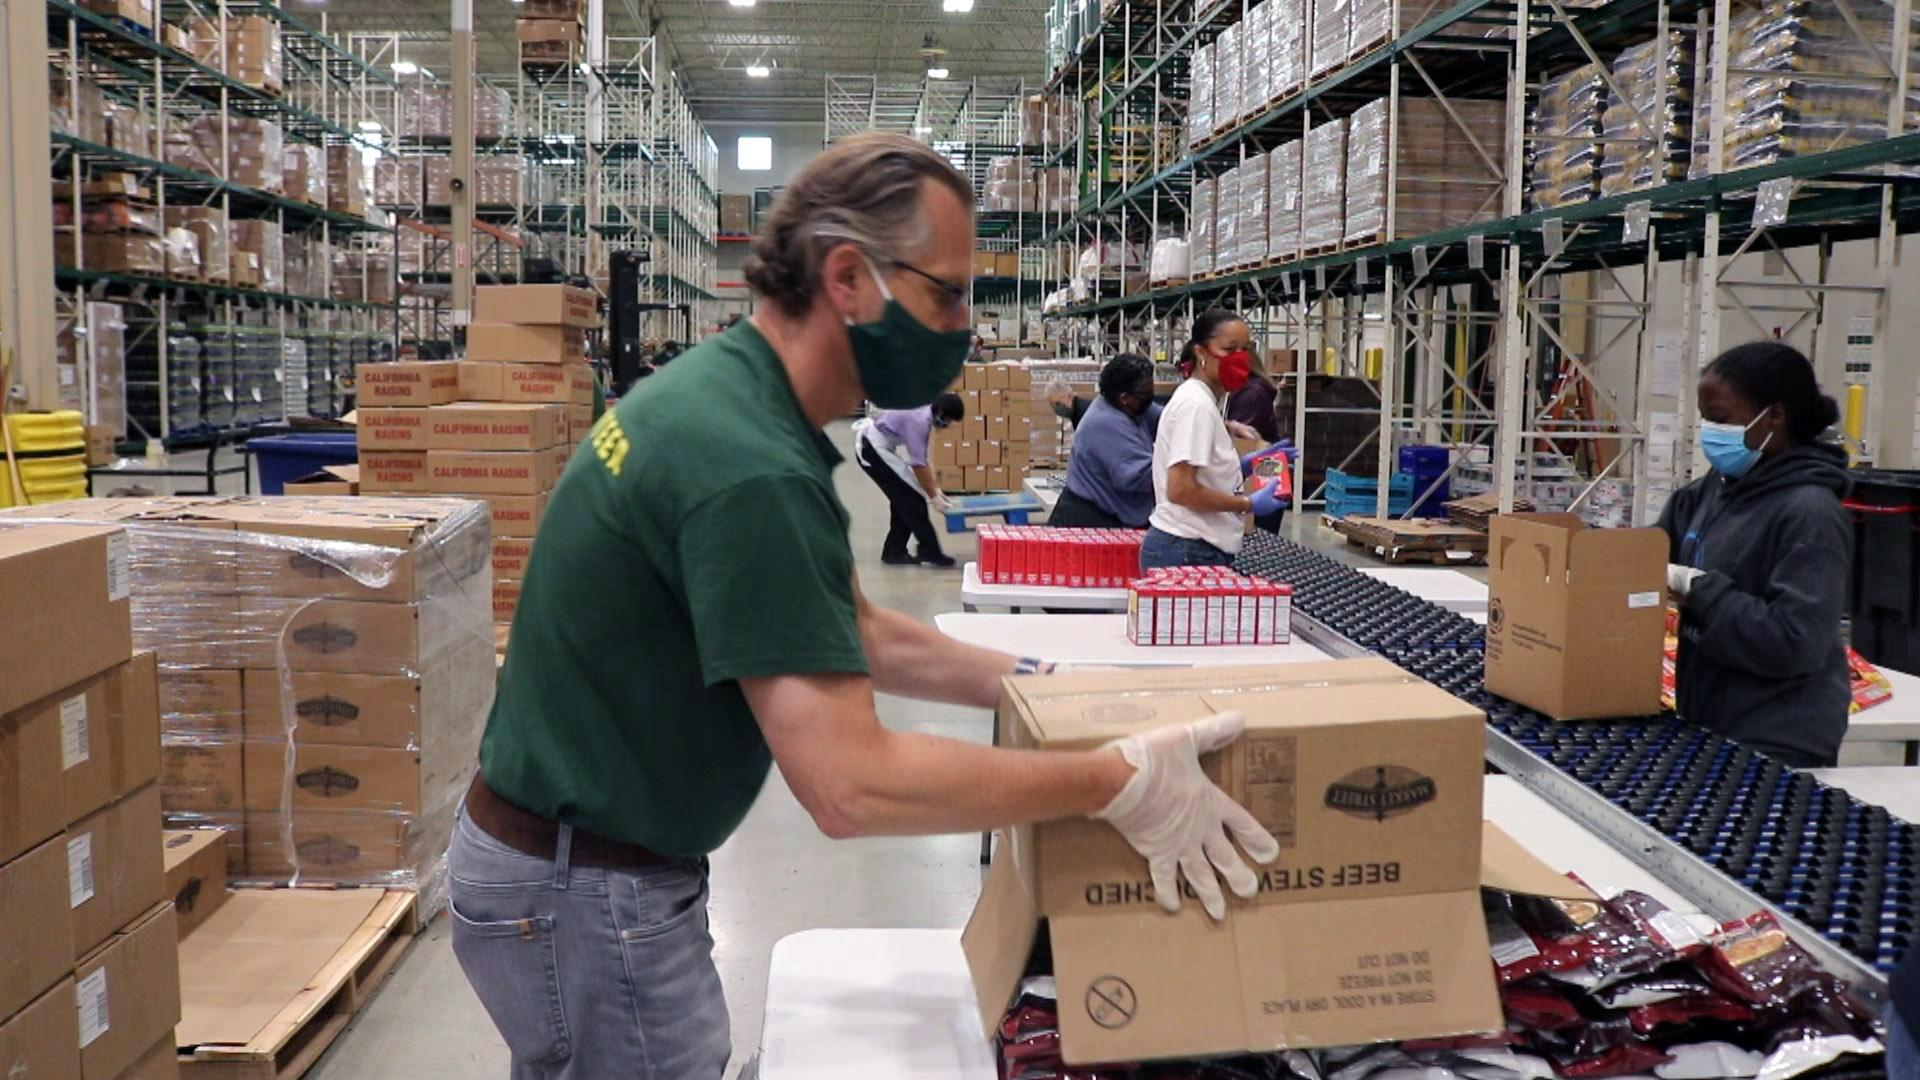 The Greater Chicago Food Depository supplies food pantries across the Chicago area. (WTTW News)